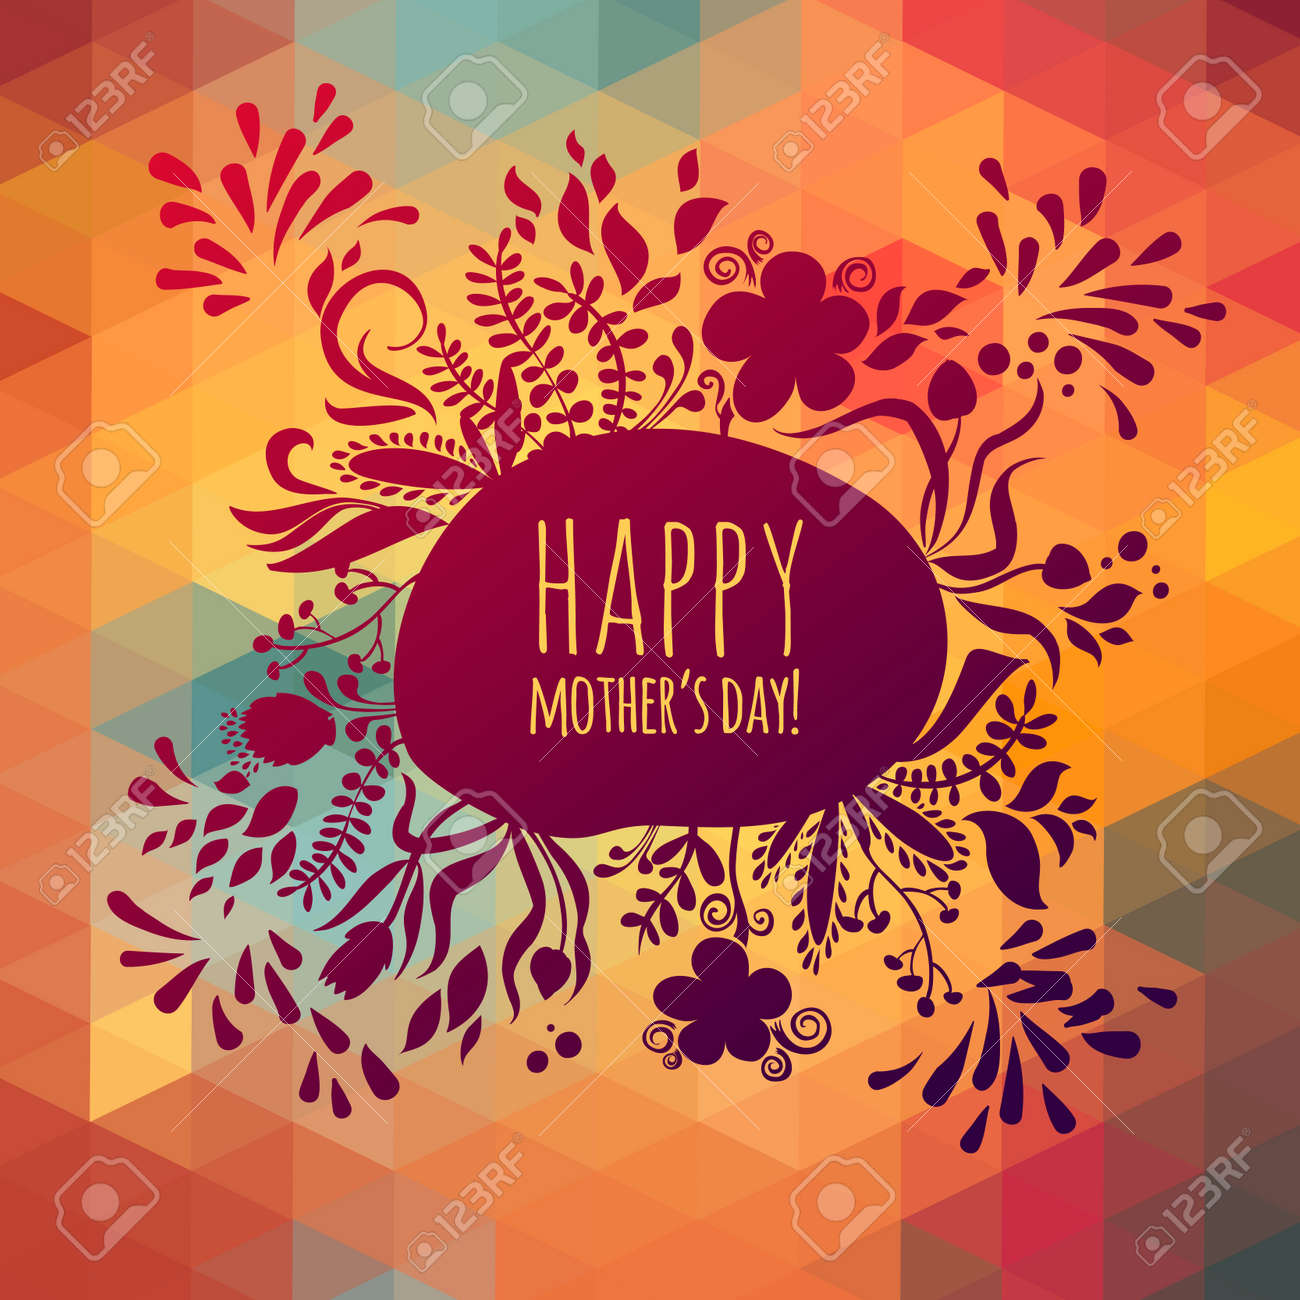 Happy Greeting Mothers Day Spring Card Floral Illustration For And Birthday Stock Vector